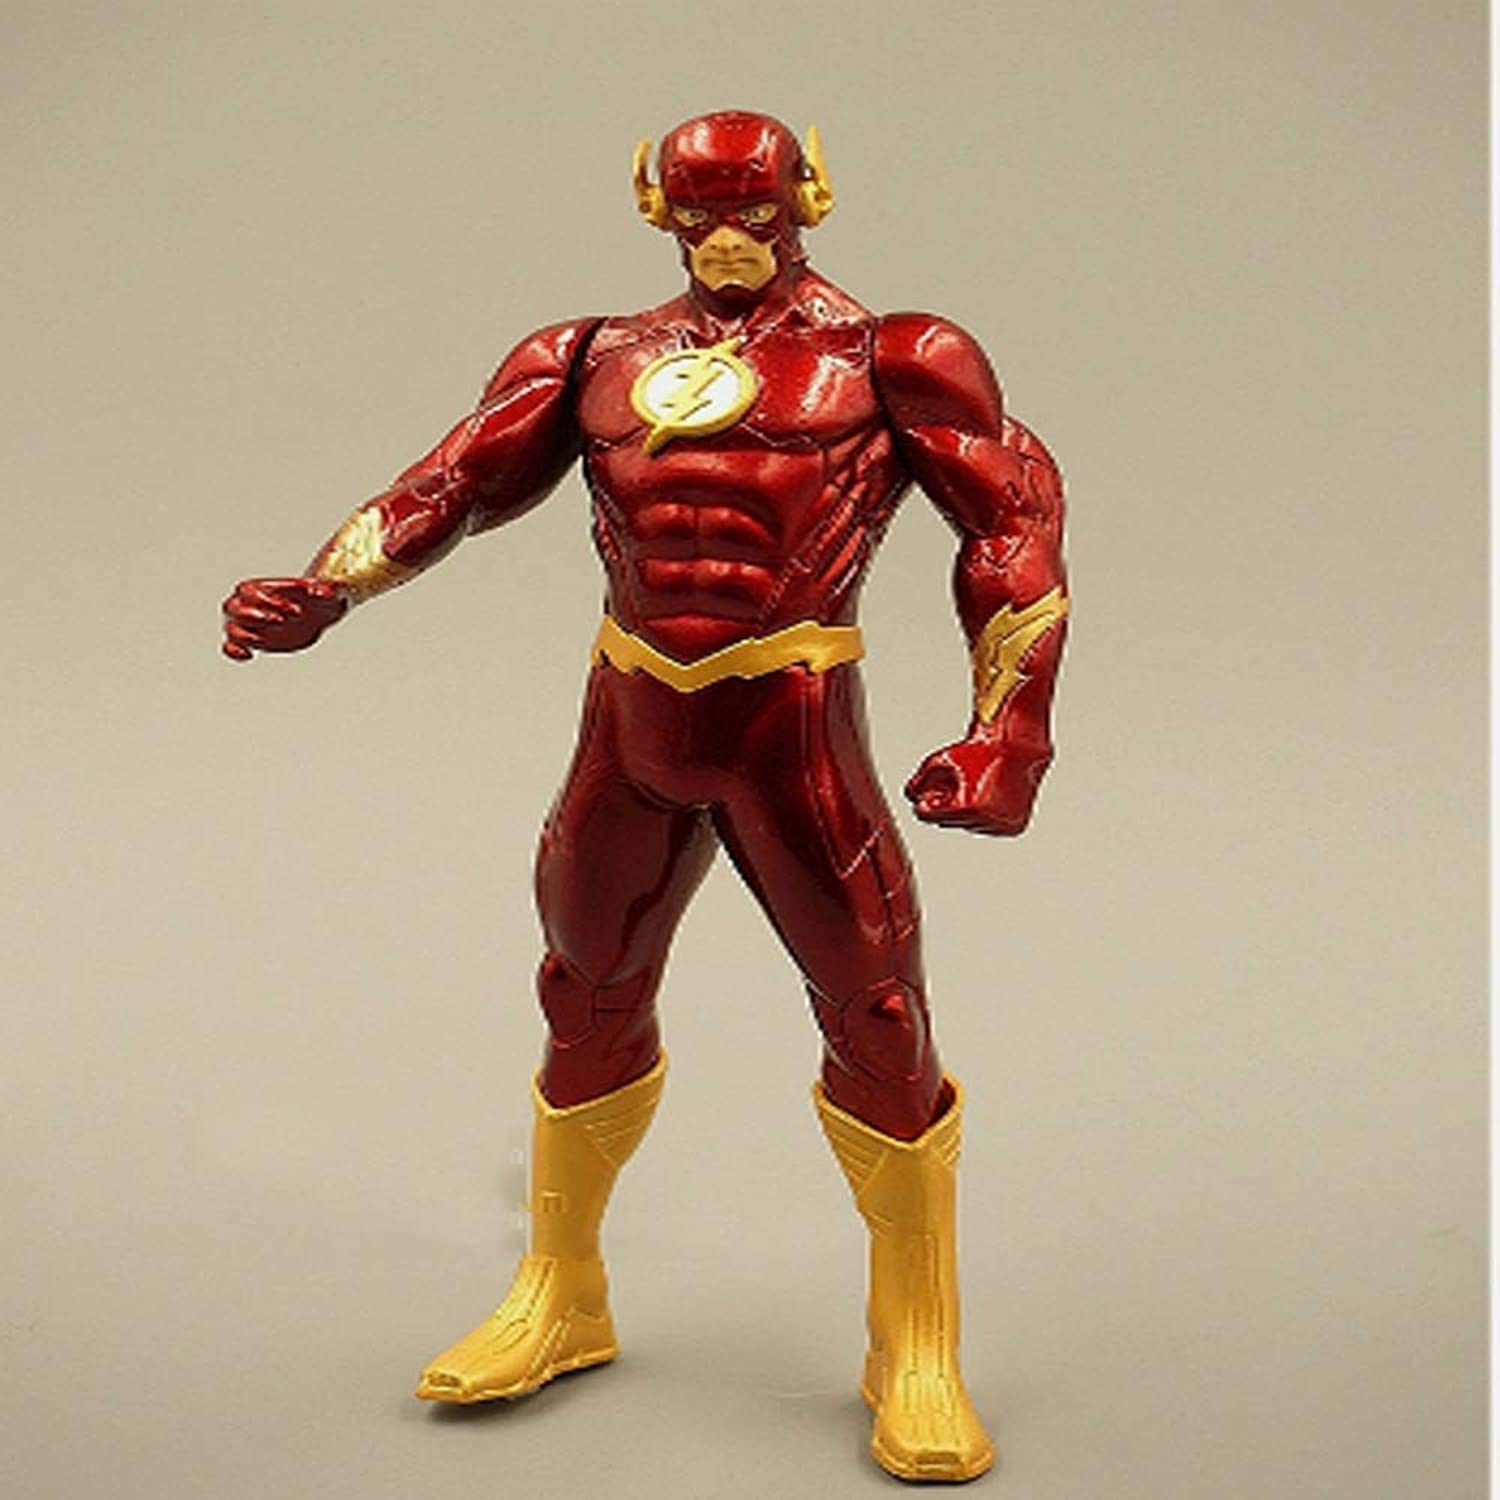 Qivor Foreign trade bulk boxed justice cartoon hero lightning man large doll doll hand model ornaments statue ornaments bust anime decorations